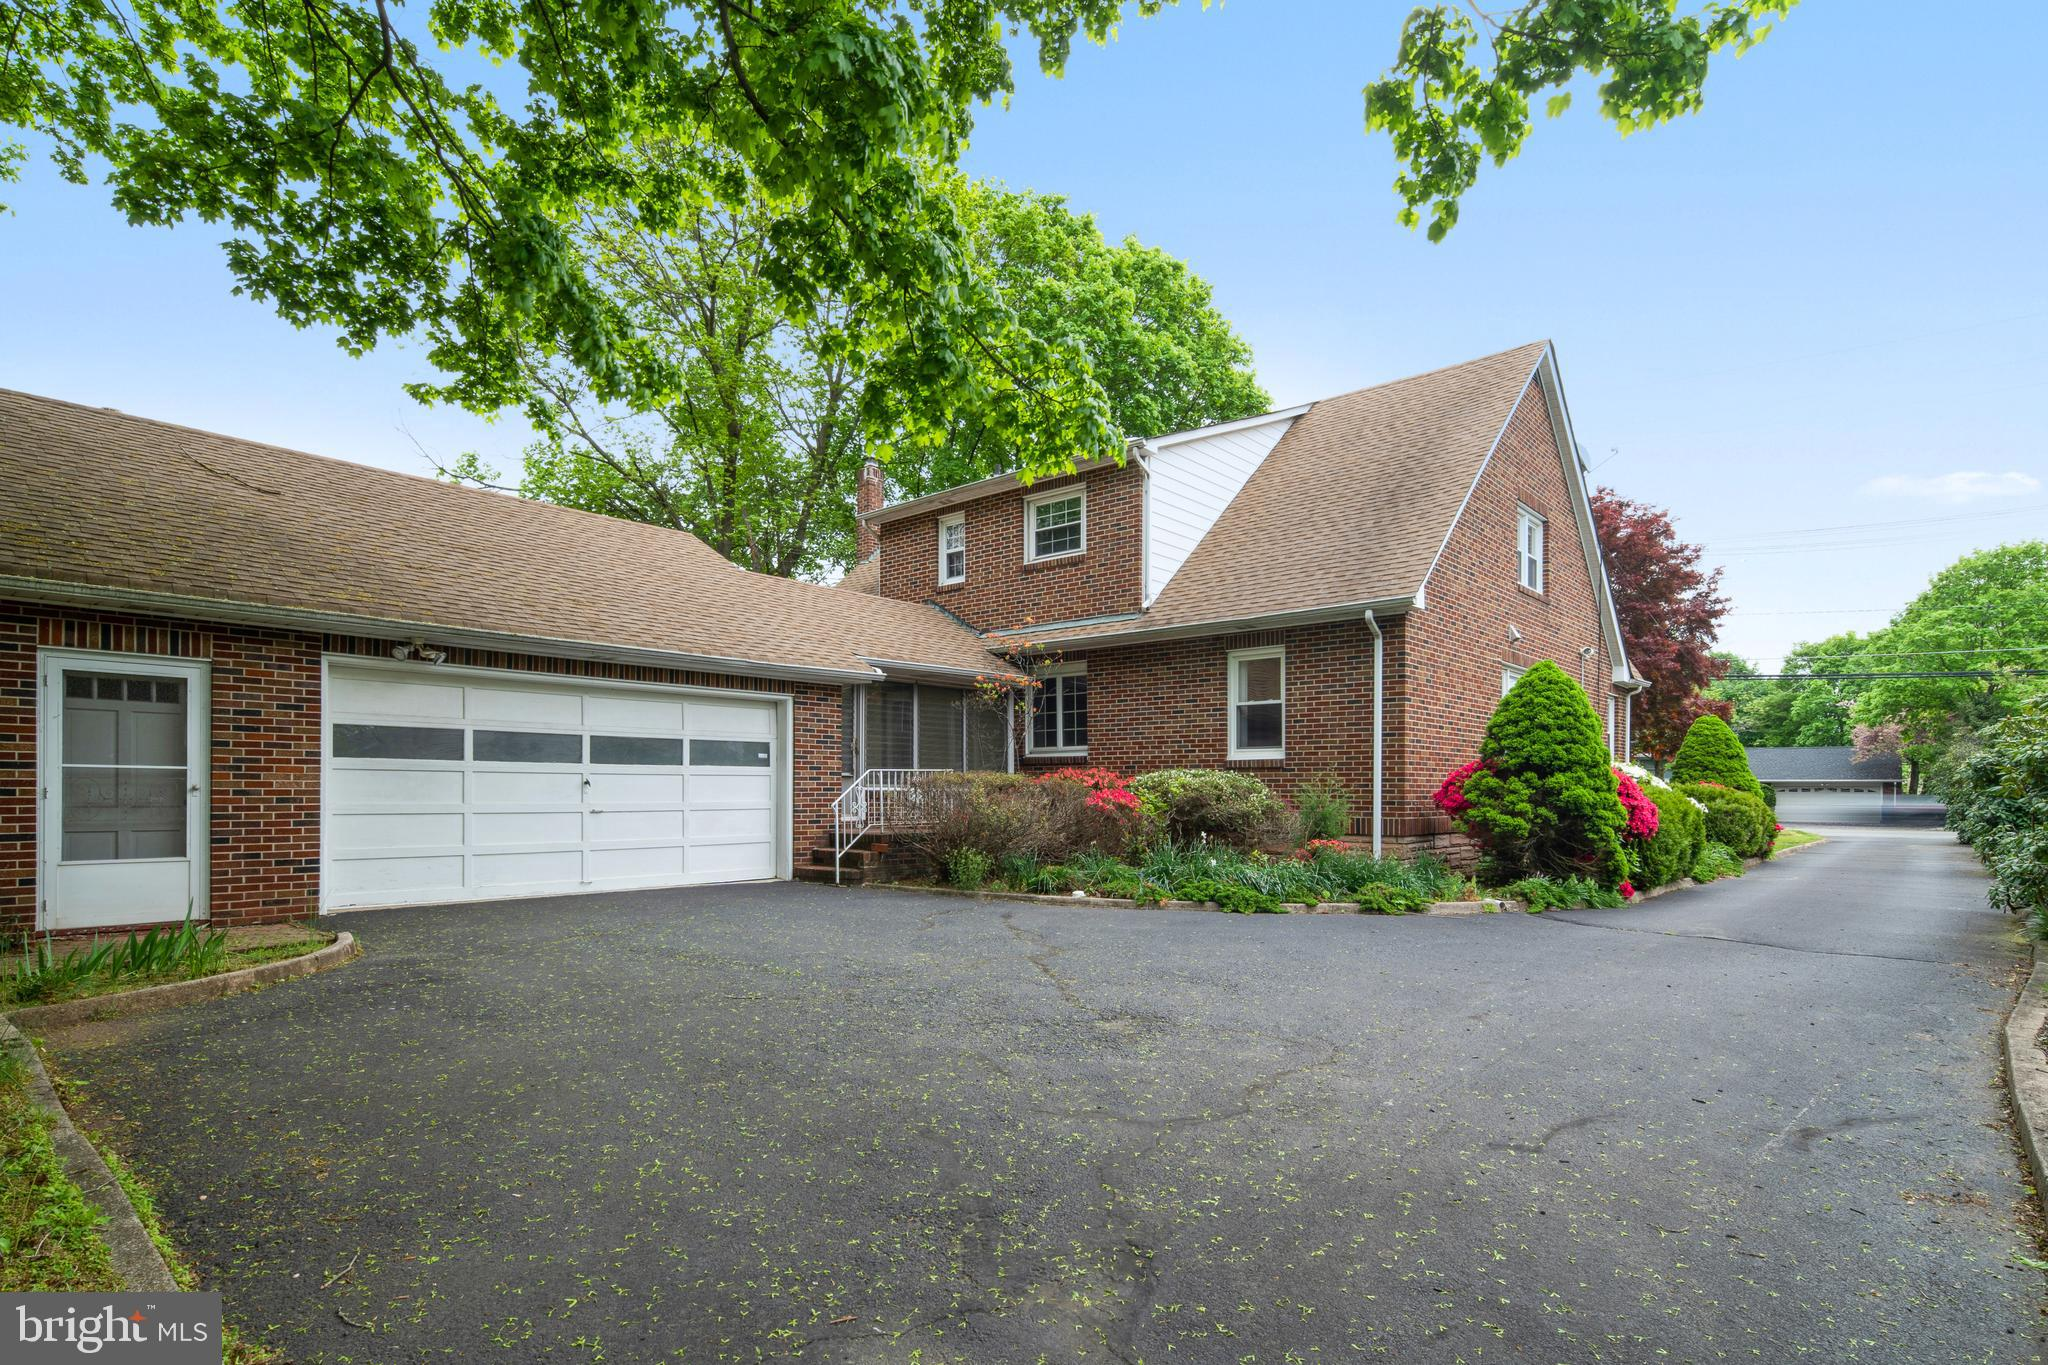 311 CEDAR GROVE LANE, SOMERSET, NJ 08873